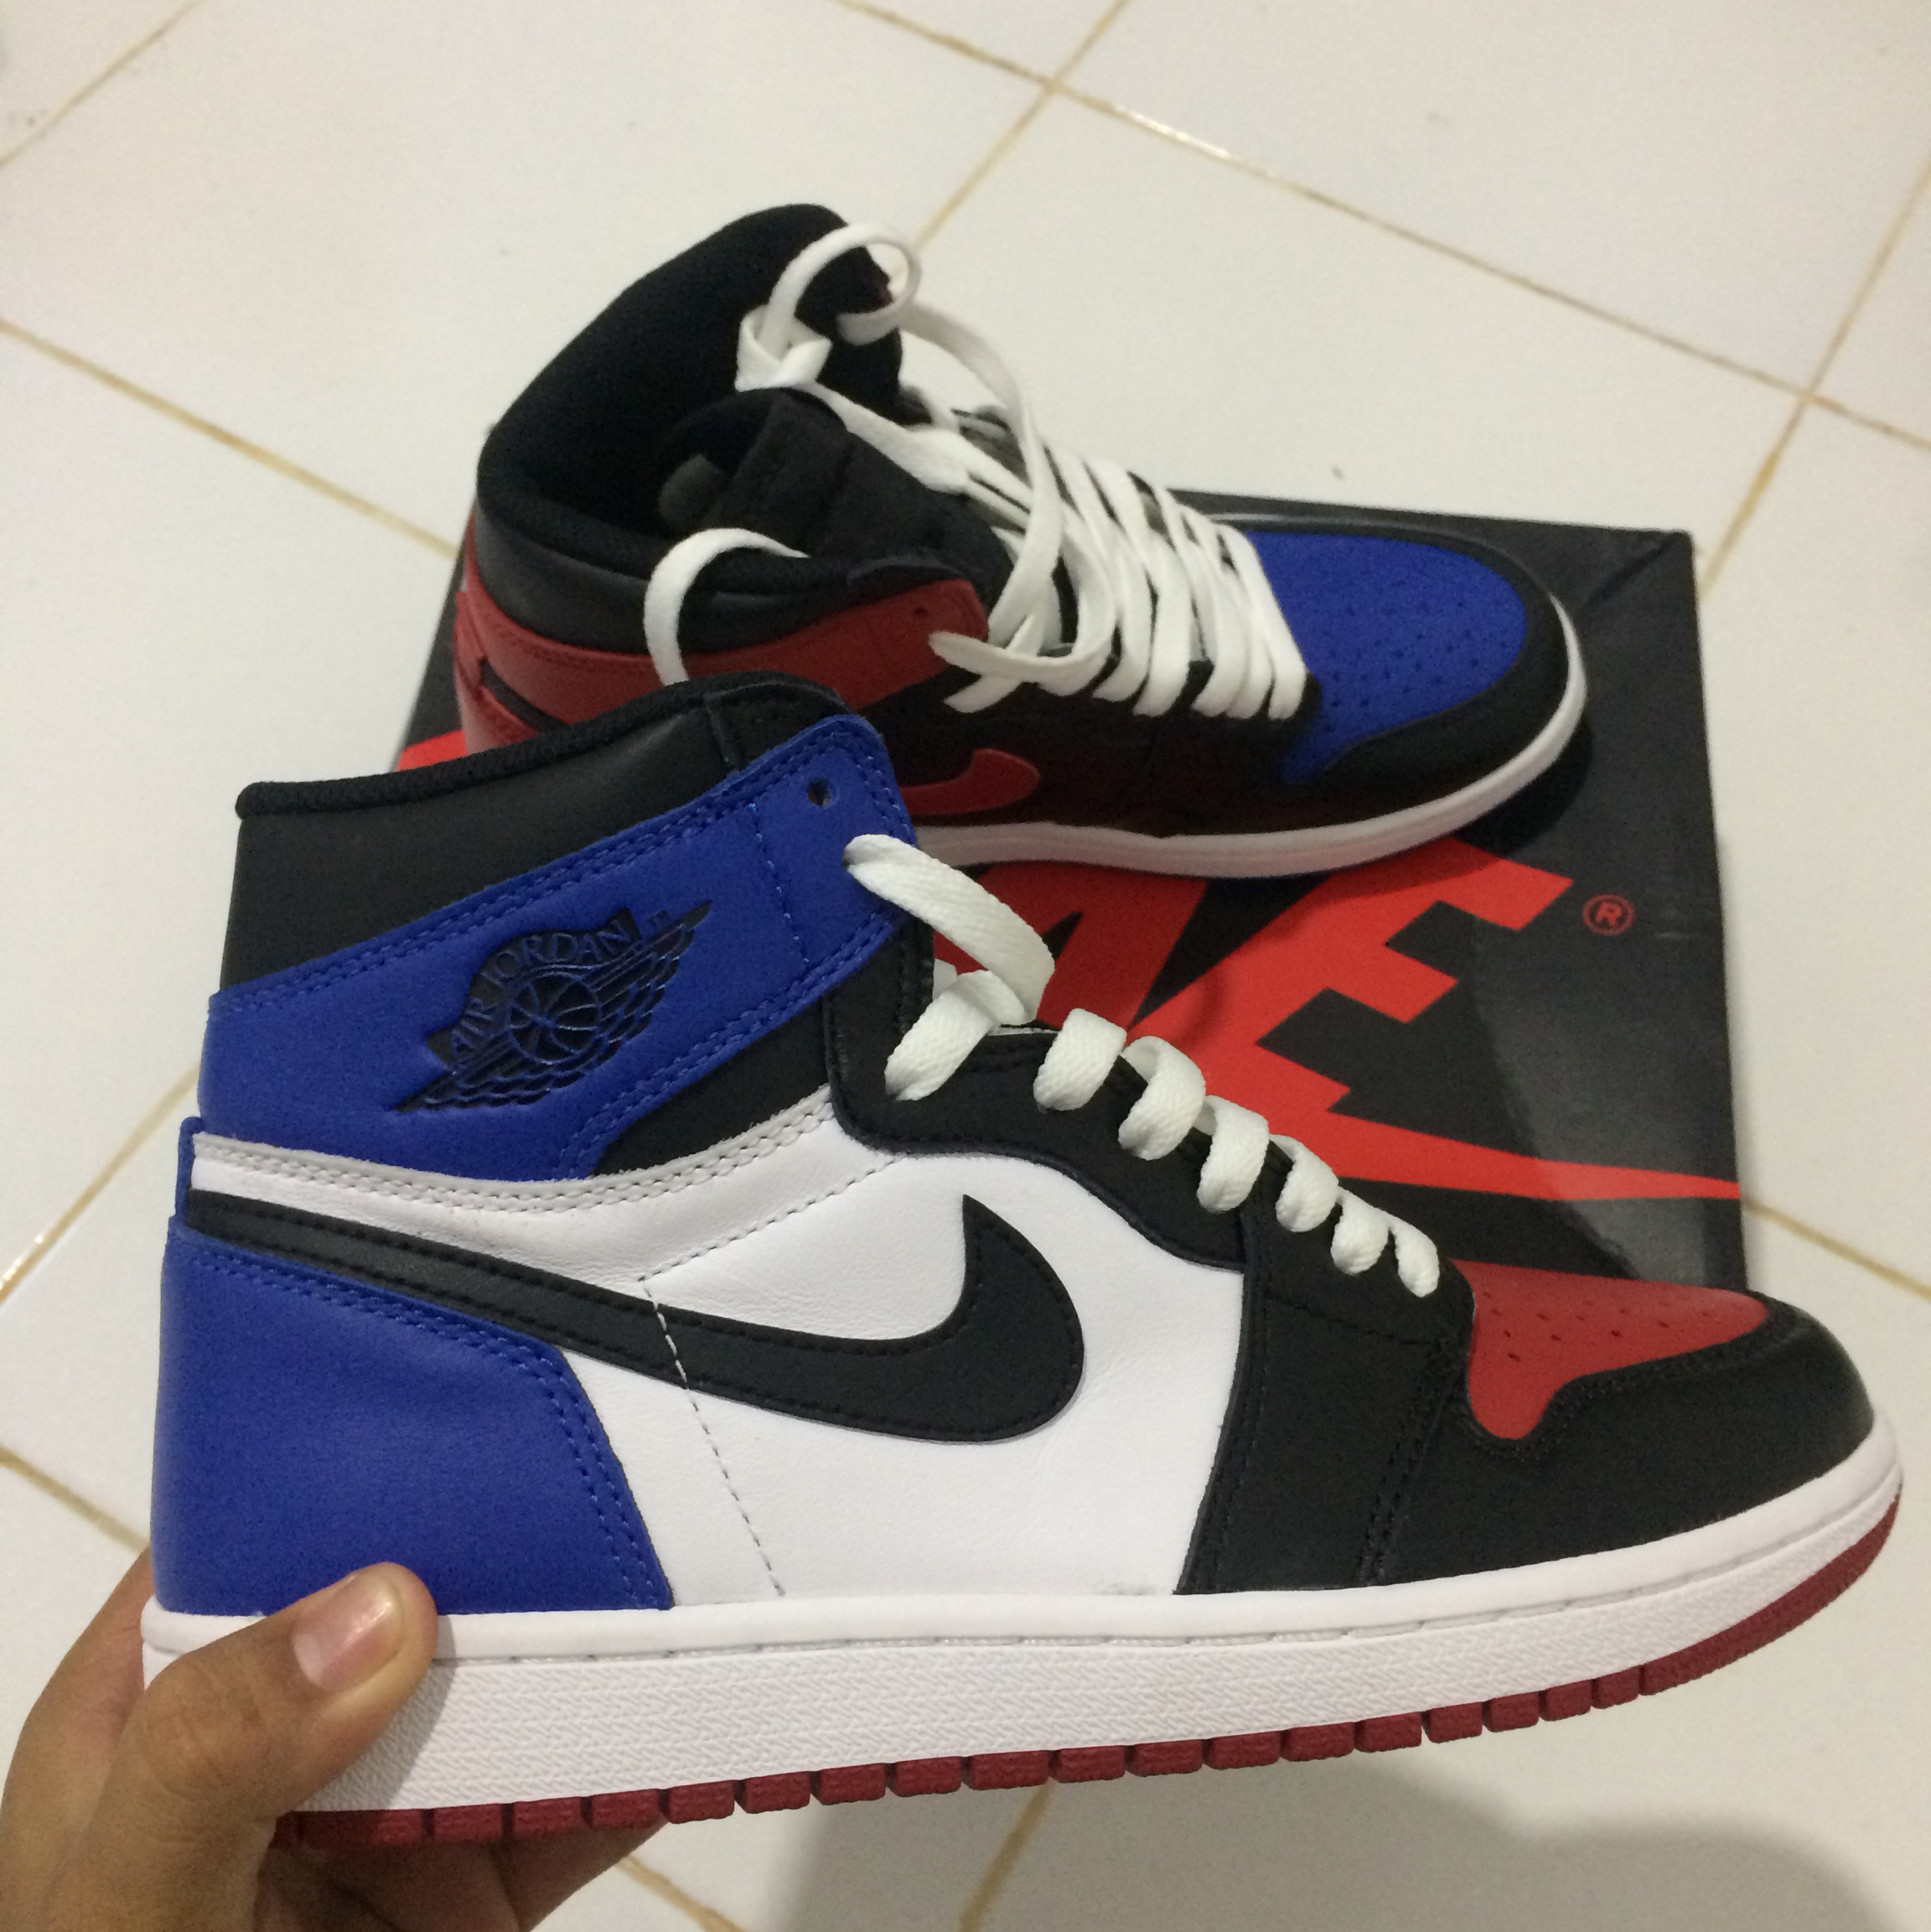 newest 4ac46 275d0 BEST DEAL ! Nike Air Jordan 1 Top 3 9/10 VNDS uk 6... - Depop